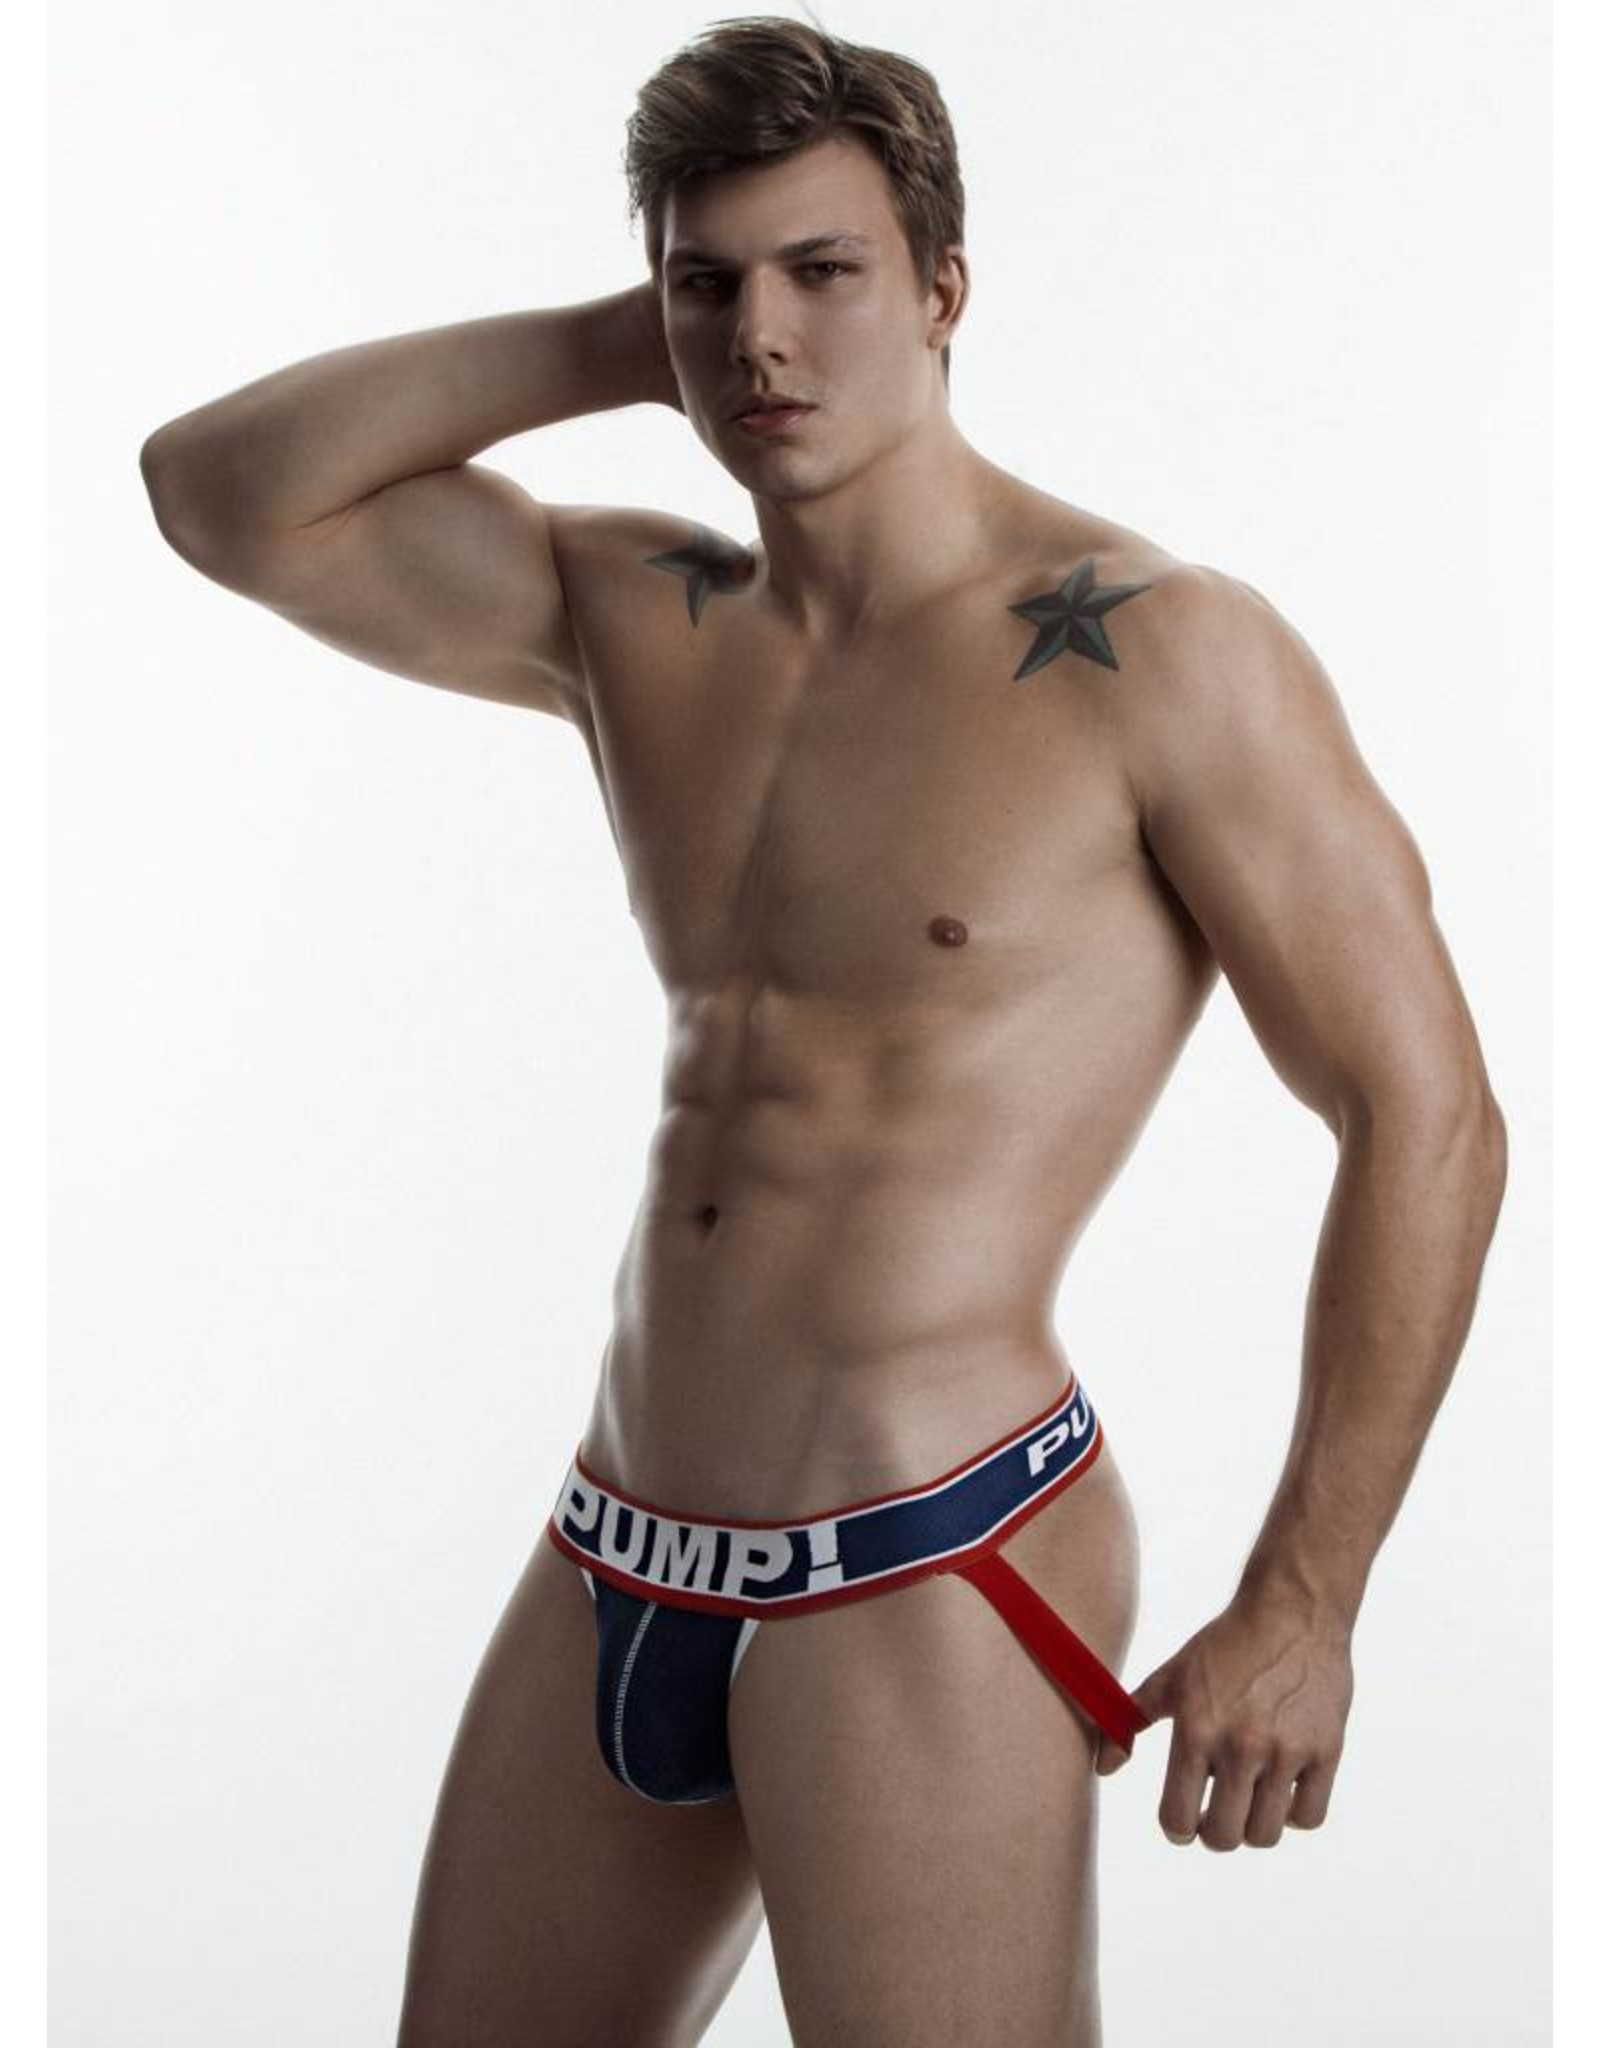 PUMP! PUMP! Big League Jock